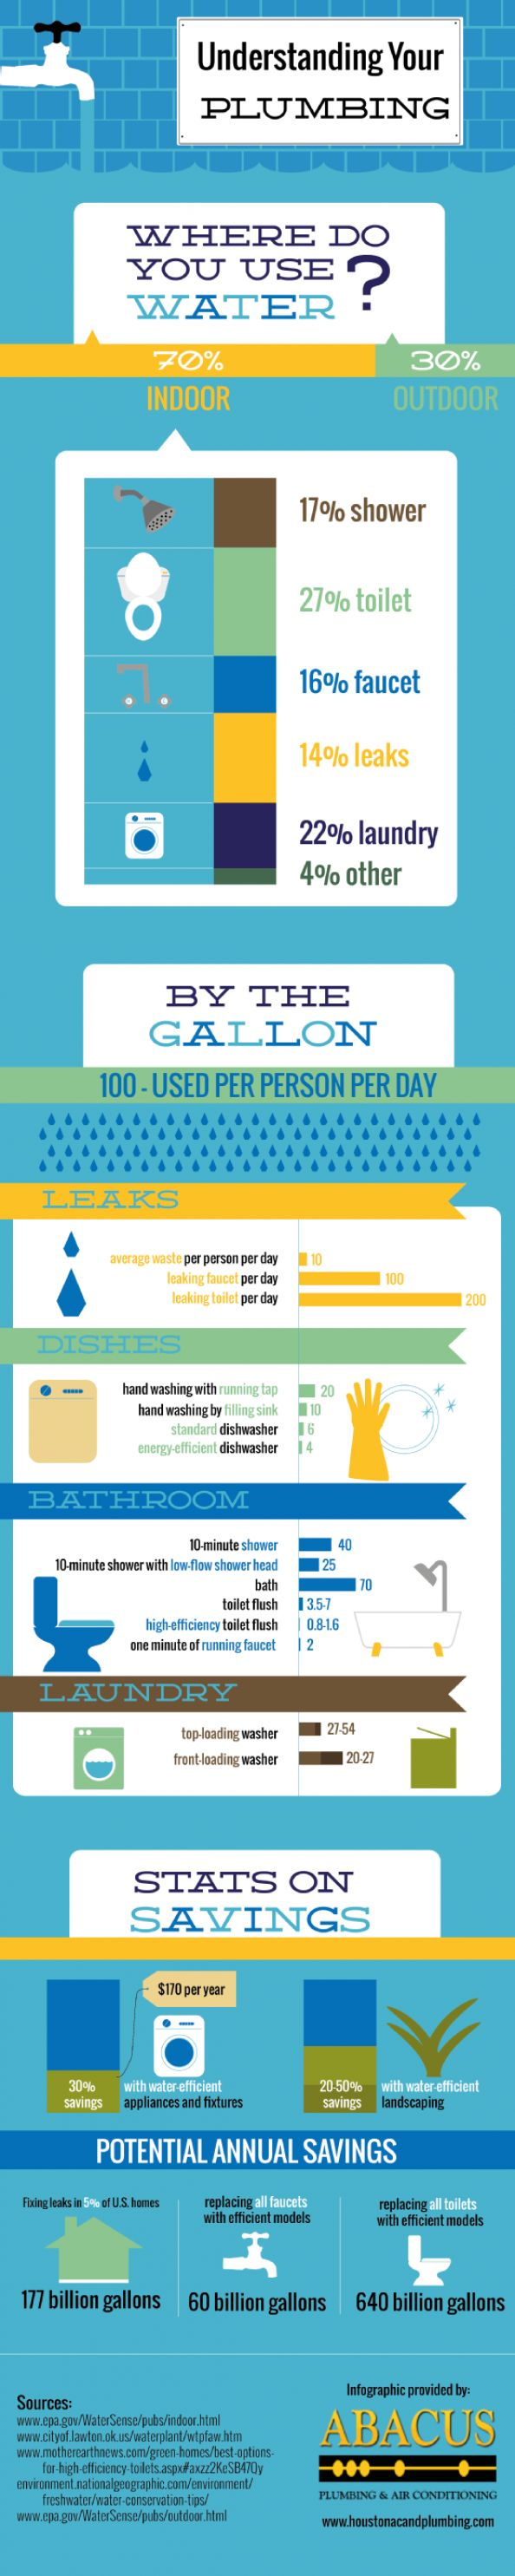 Toilets use a lot of water. Leaking toilets use even more! A leaking toilet wastes up to 200 gallons of water every day. This infographic can help you learn more about leaks and how to fix them.